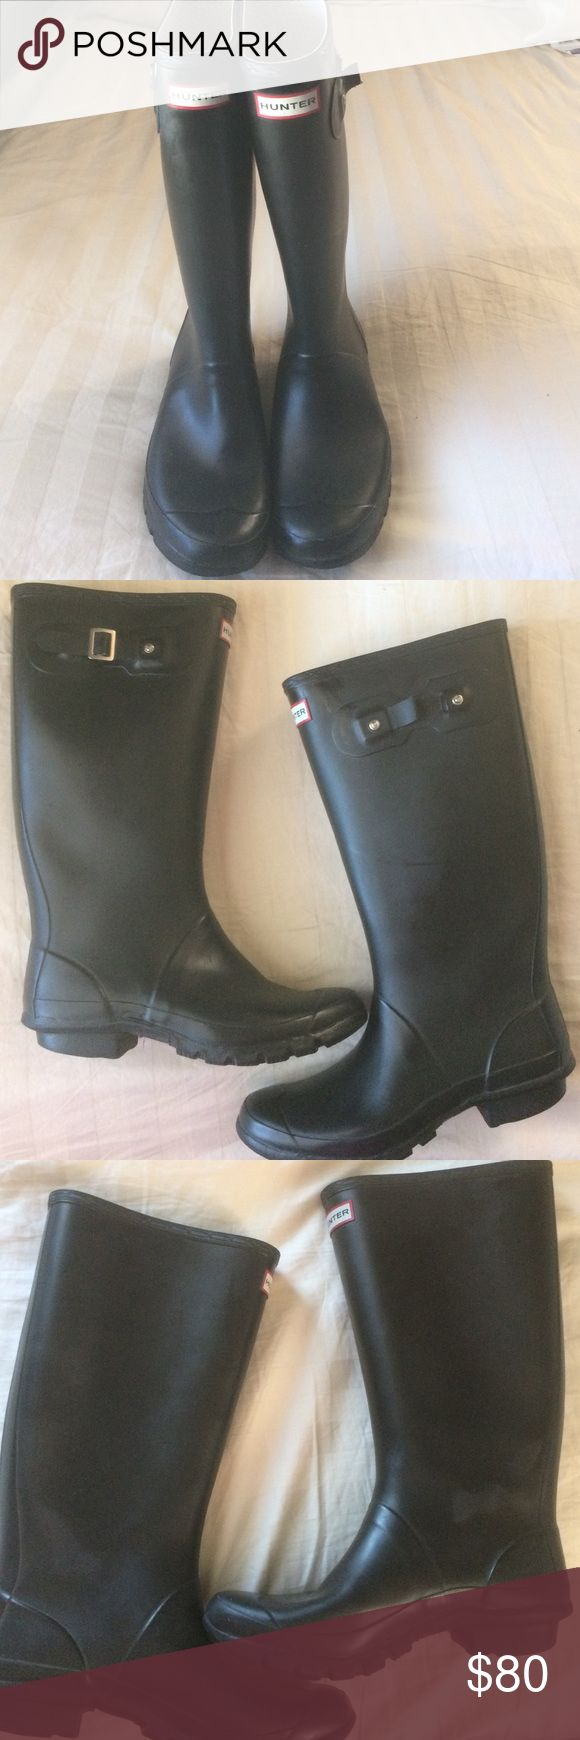 Hunter Huntress Wellies  Sale !!! Priced to sale loved Hunter boots. They show some signs of wear. Lots of life left. The left buckle is broken, heels are slightly worn, and there are a few wear marks. Hunter Boots Shoes Winter & Rain Boots